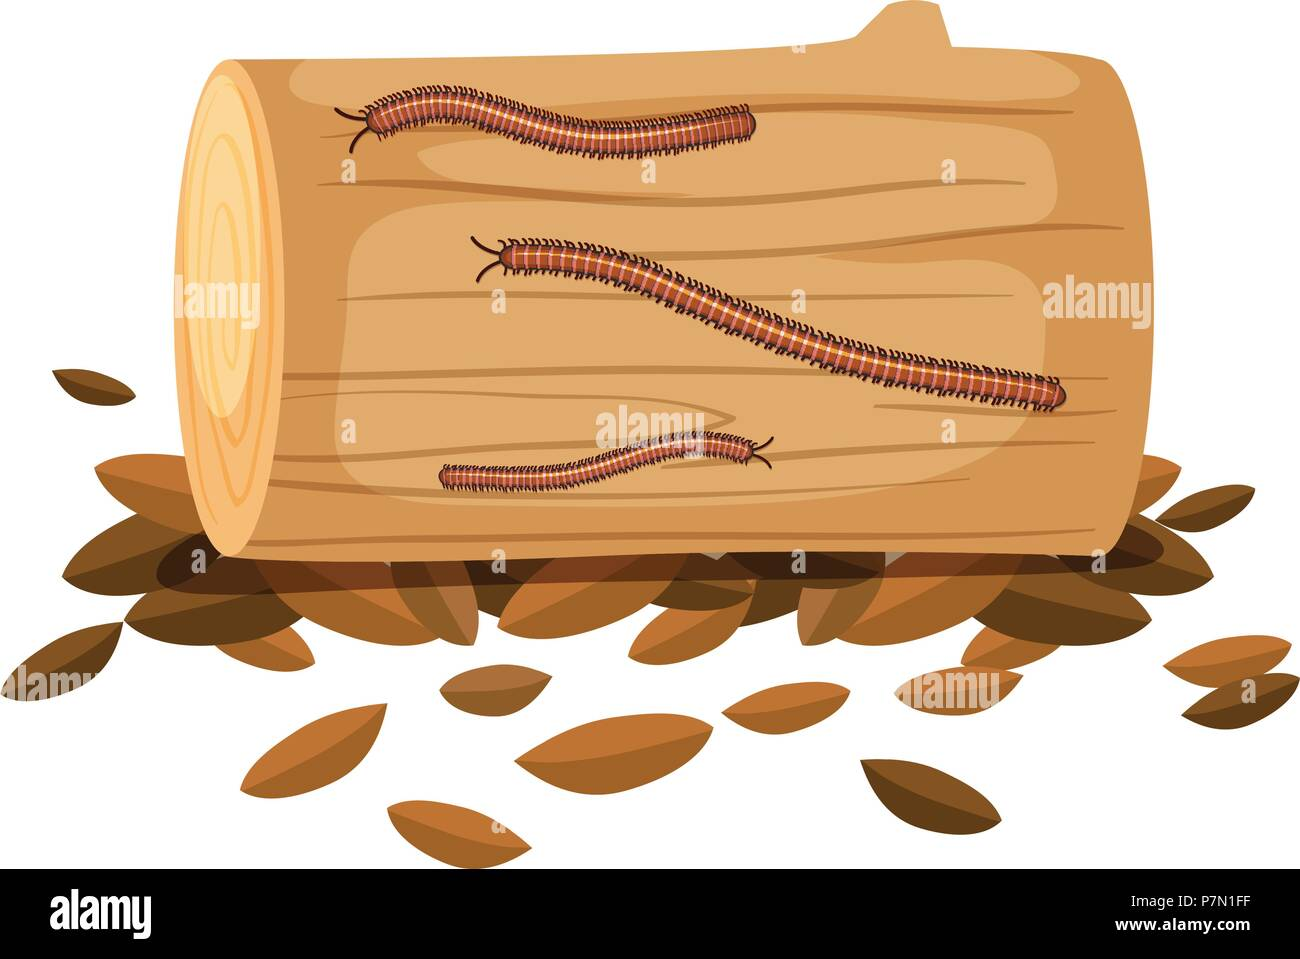 Centipede On Wood on White Background illustration - Stock Vector